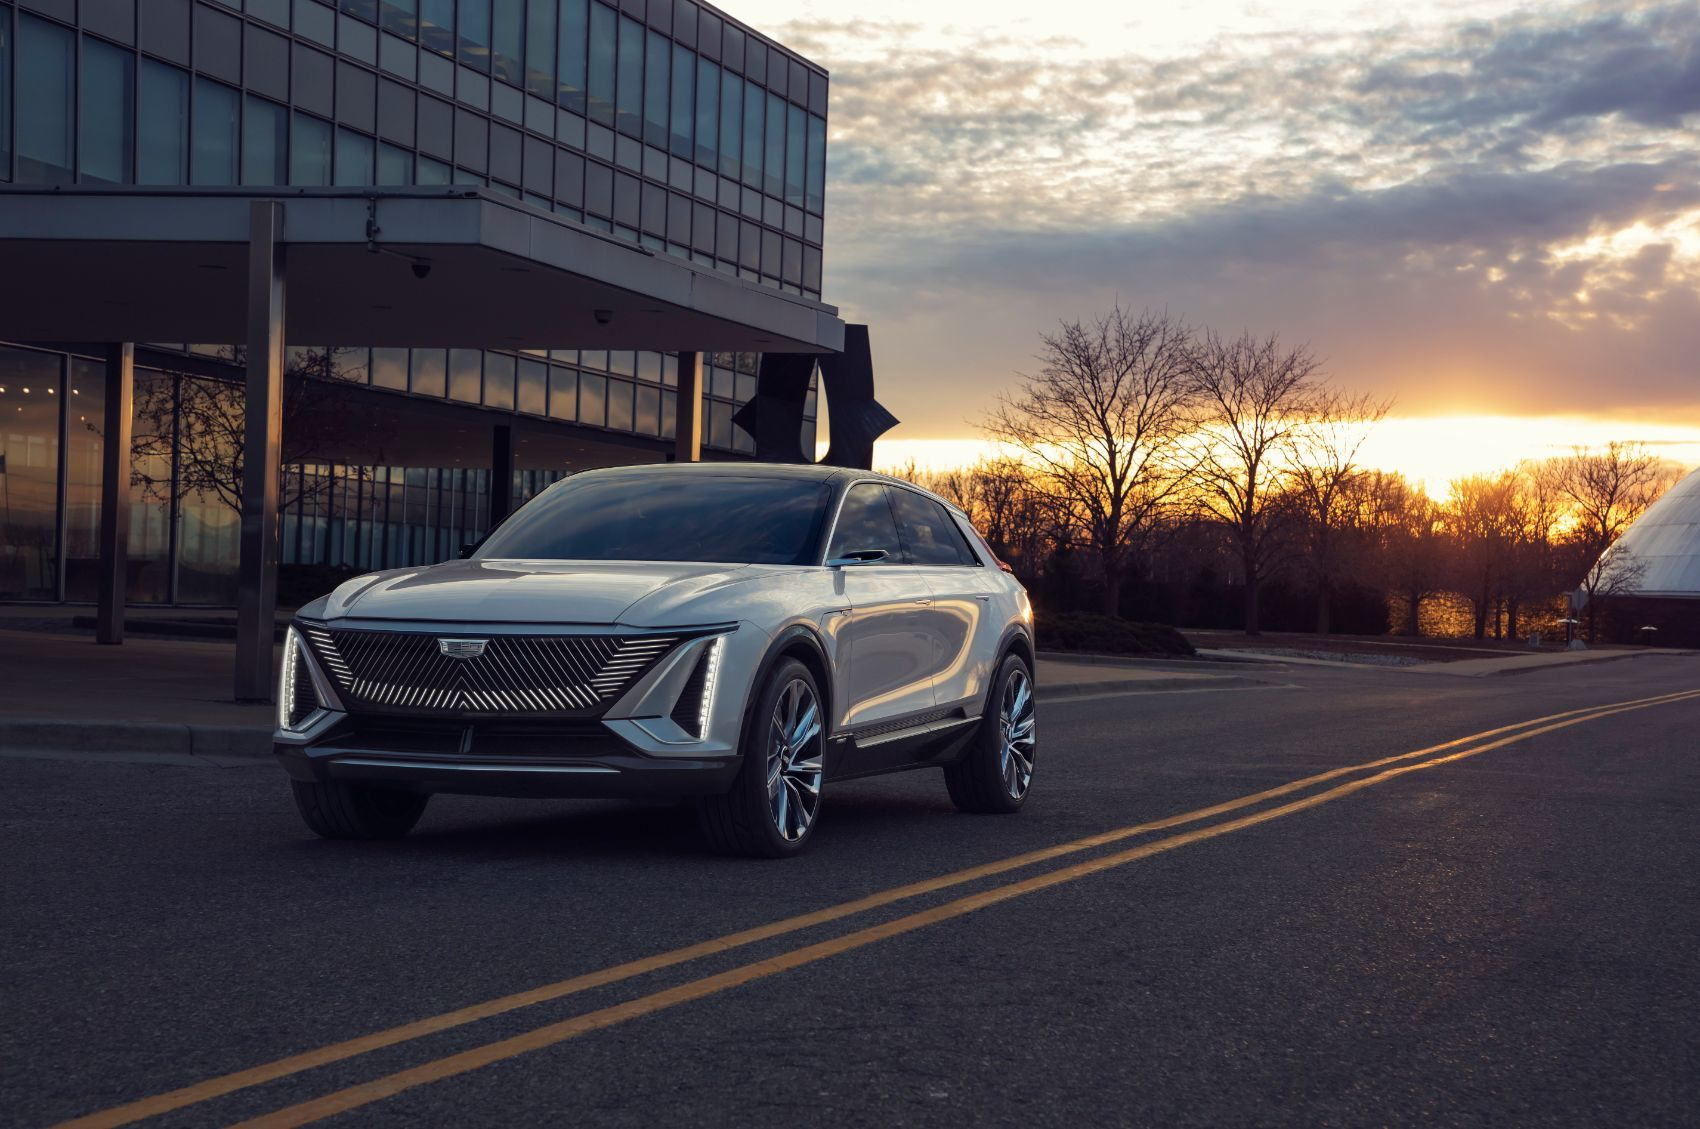 2023 Cadillac Lyriq: Will This New EV Crossover Be Worth The Wait?